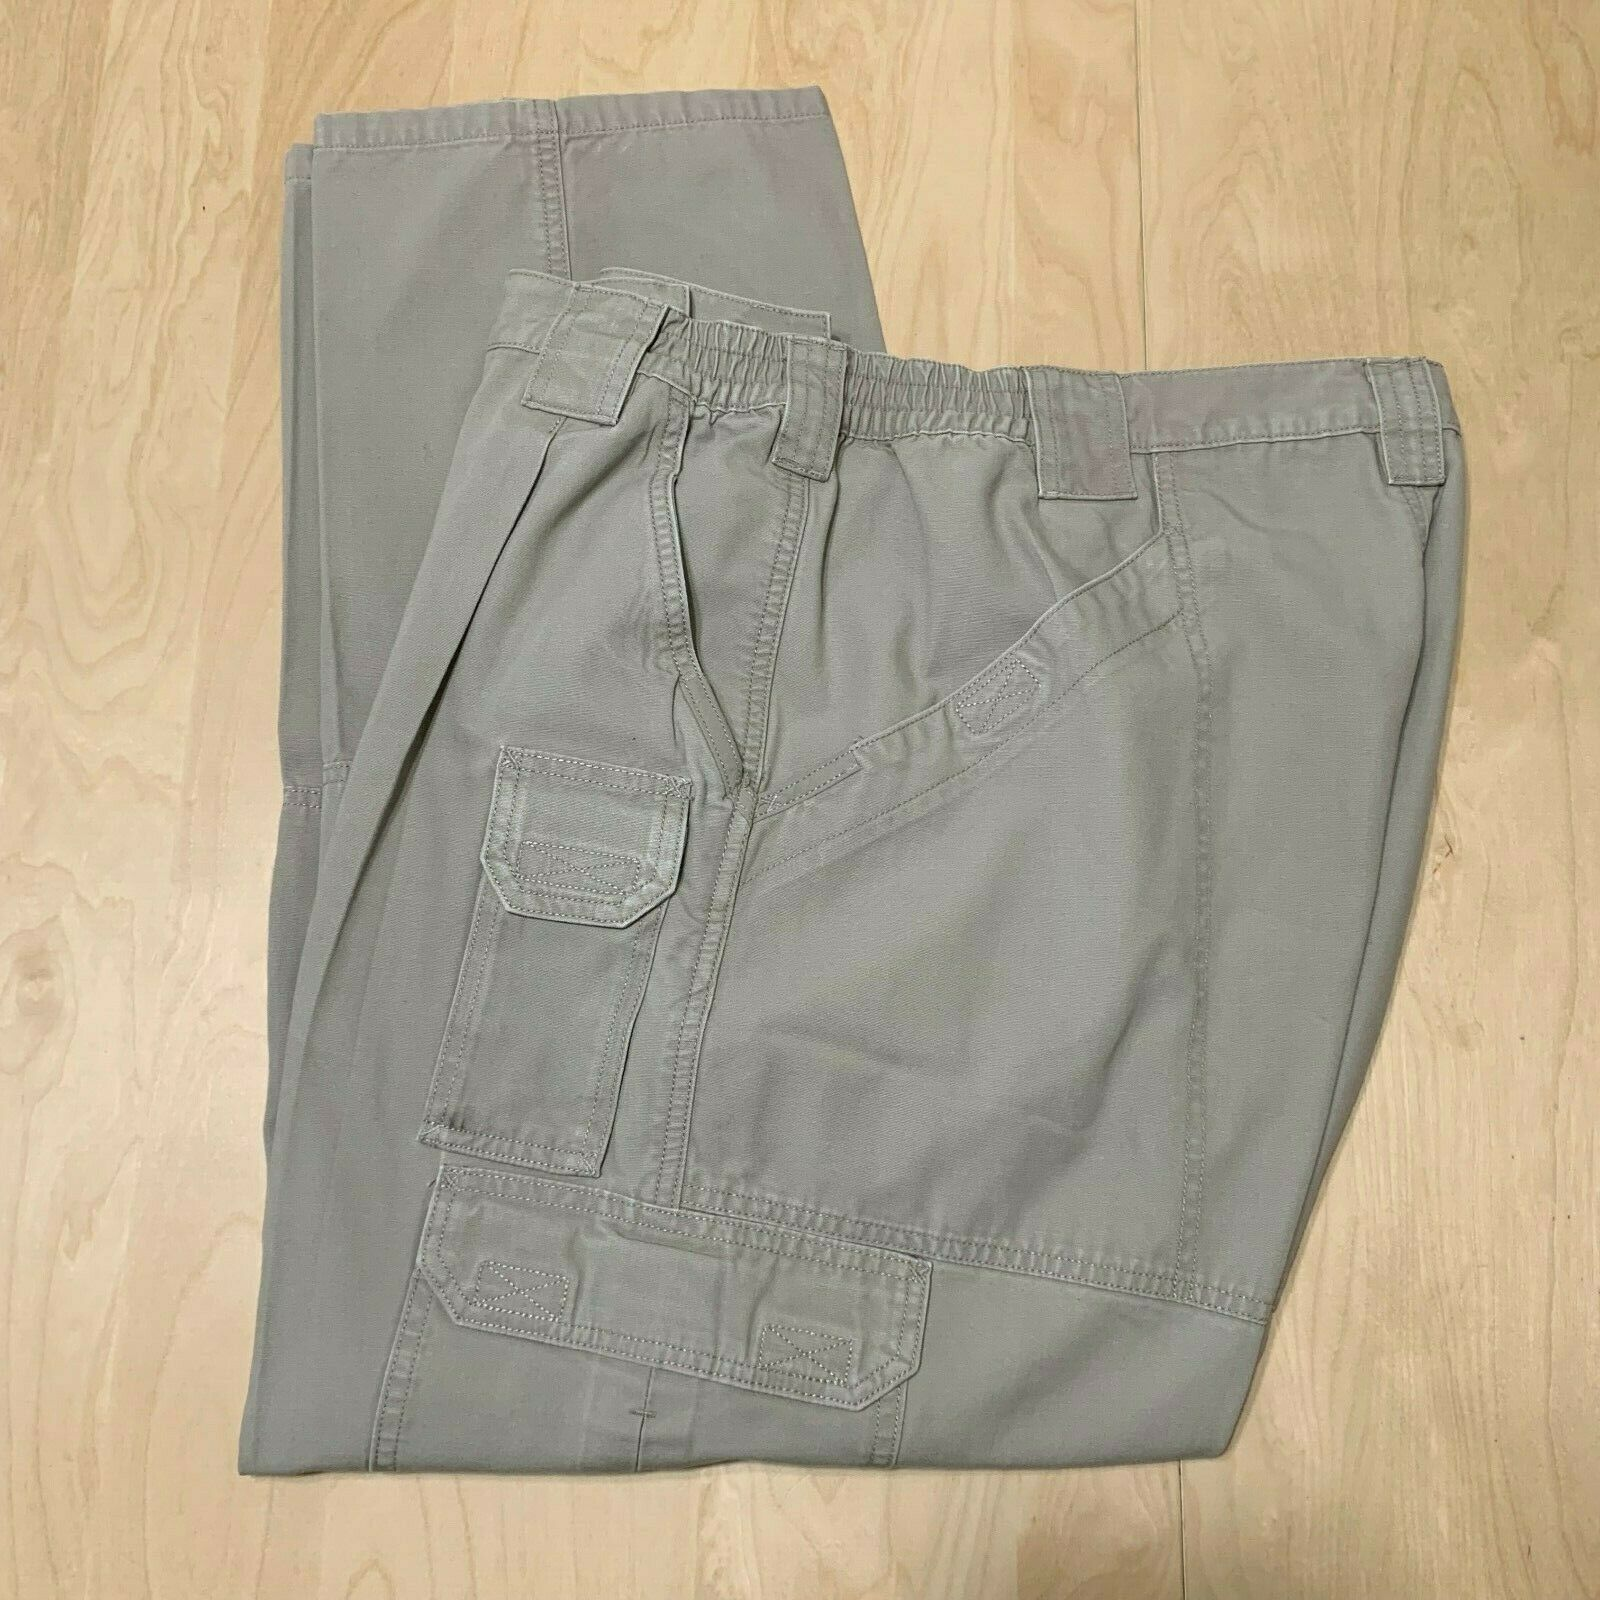 511 TACTICAL Series 74251 PANTS CARGO Paramedic Fire EMT Police 40x30 Beige